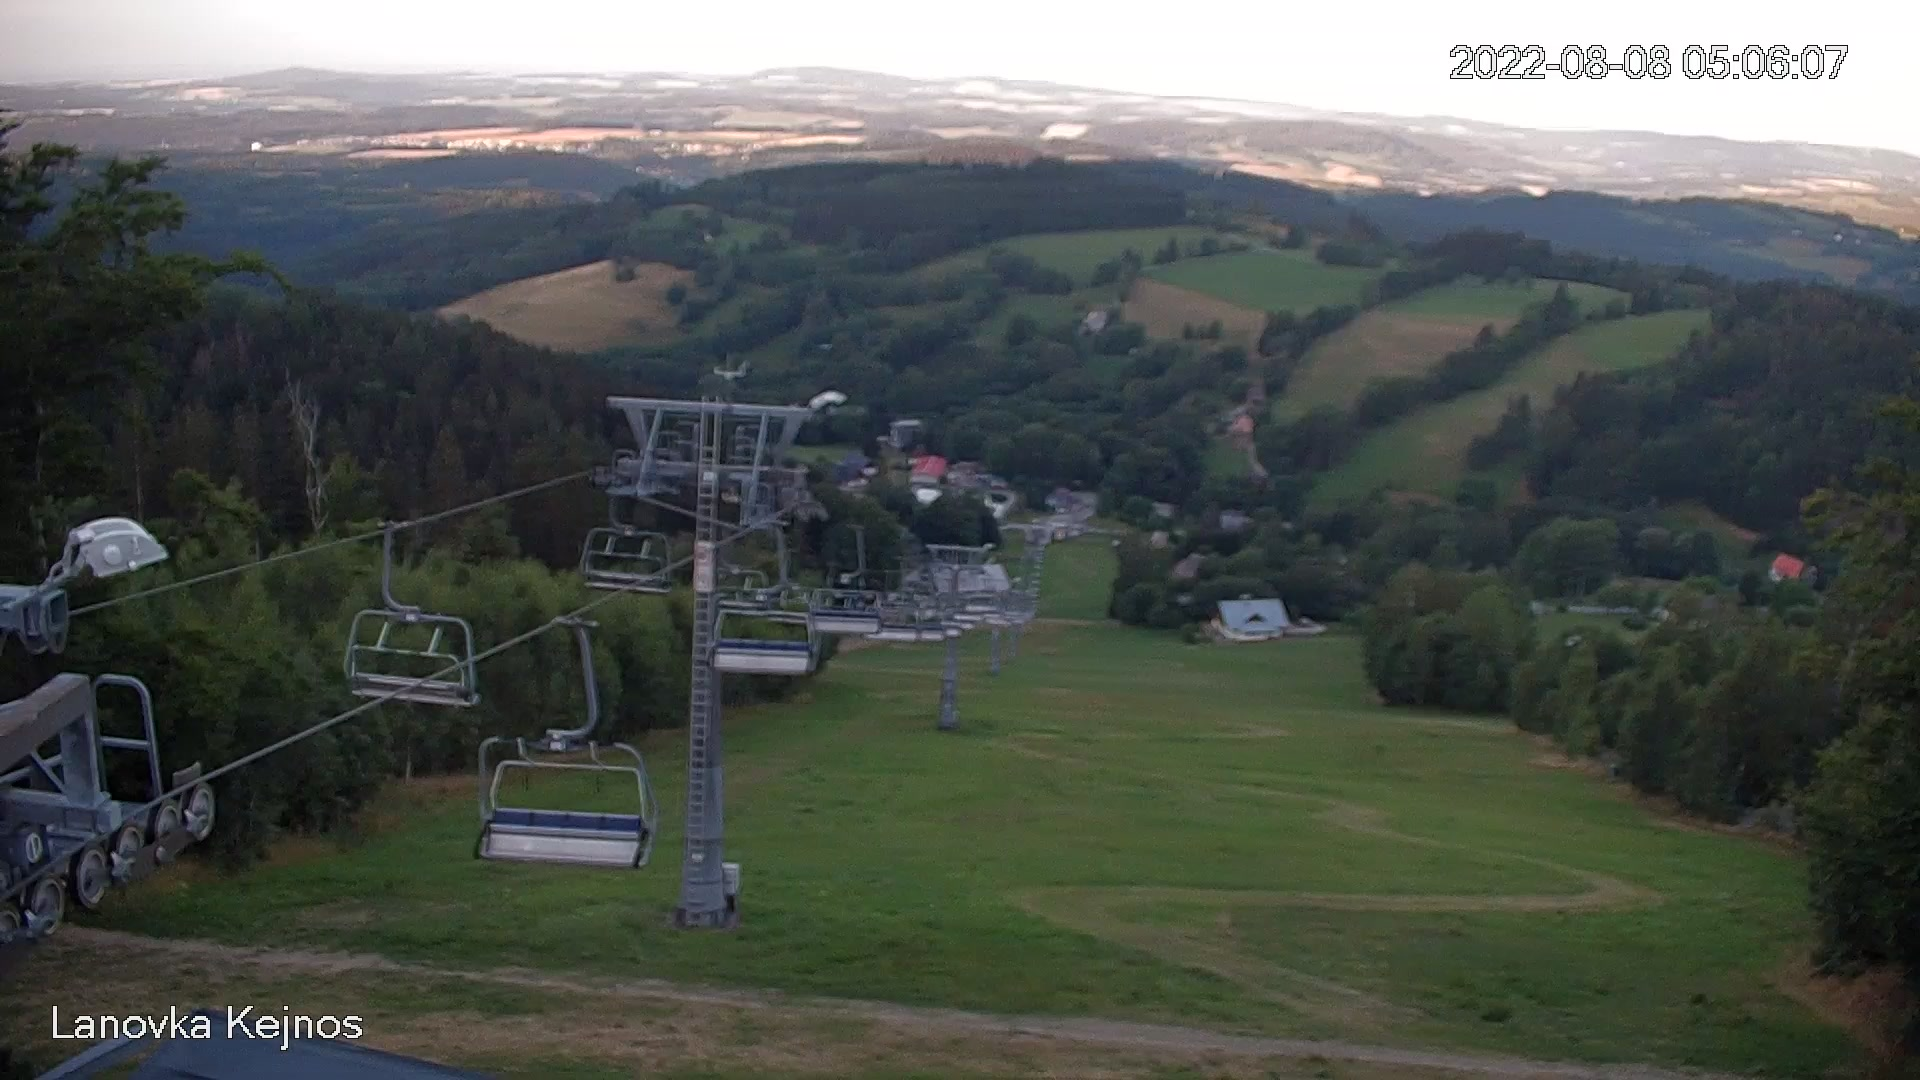 Kejnos chairlift – live